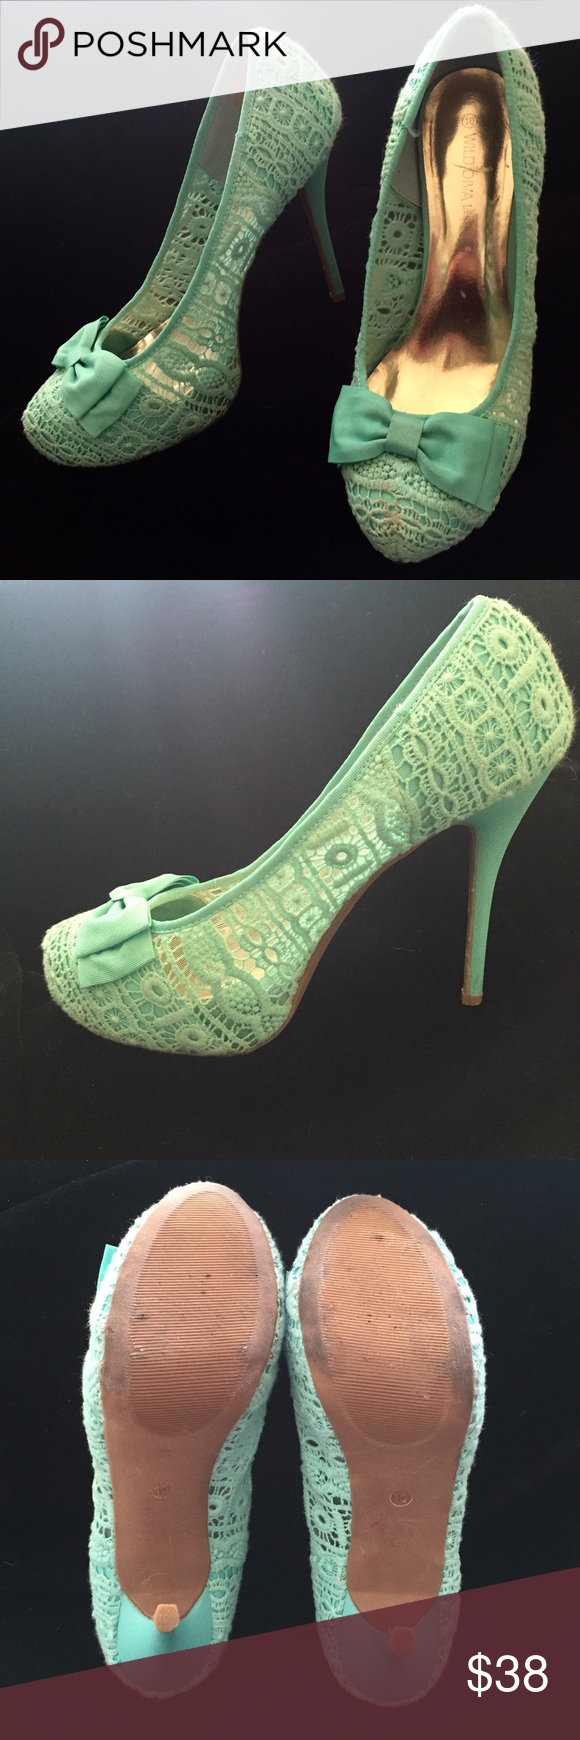 Mint Green Lace Shoes Mint Green Lace Shoes with an adorable now. These were worn sometimes on Sunday to church.  You will not find another pair anywhere like this style and color. Wild Diva Shoes Platforms